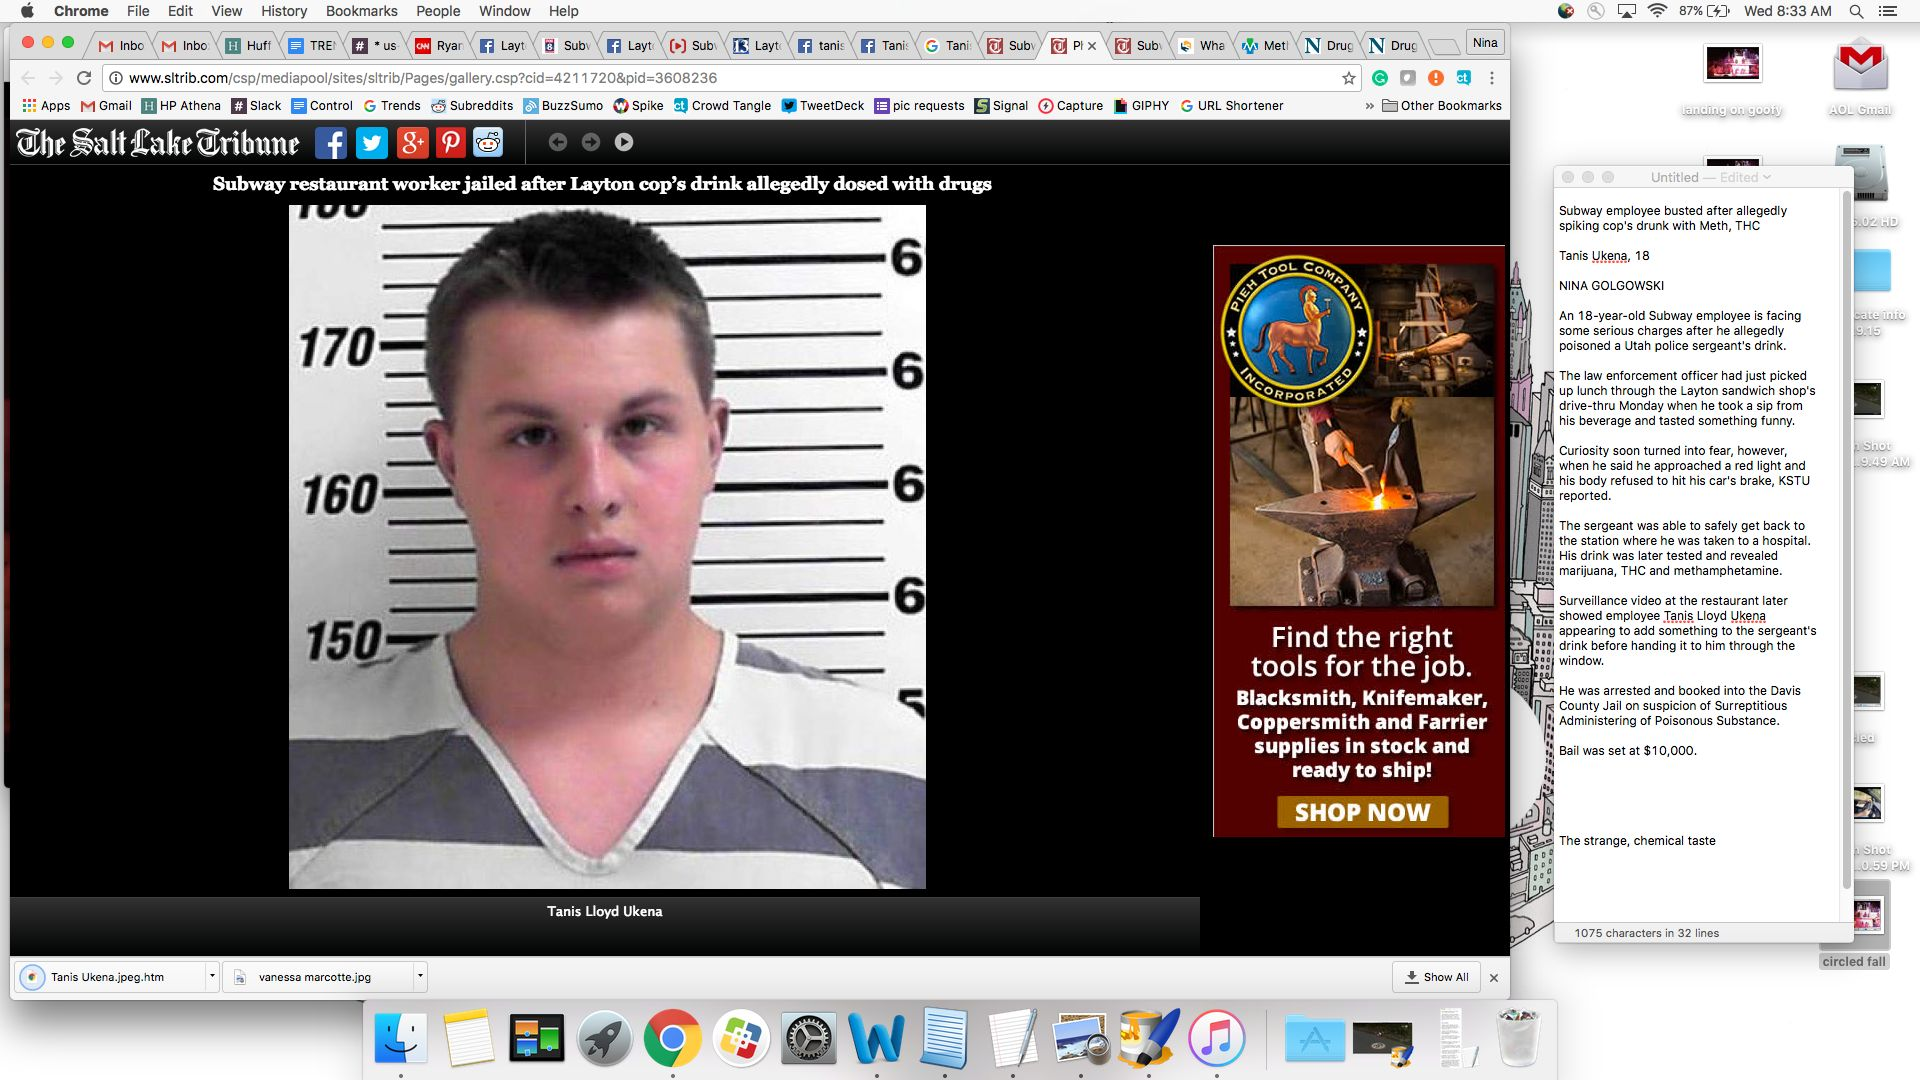 Tanis Ukena, 18, faces a felony charge of Surreptitious Administering of Poisonous Substance.